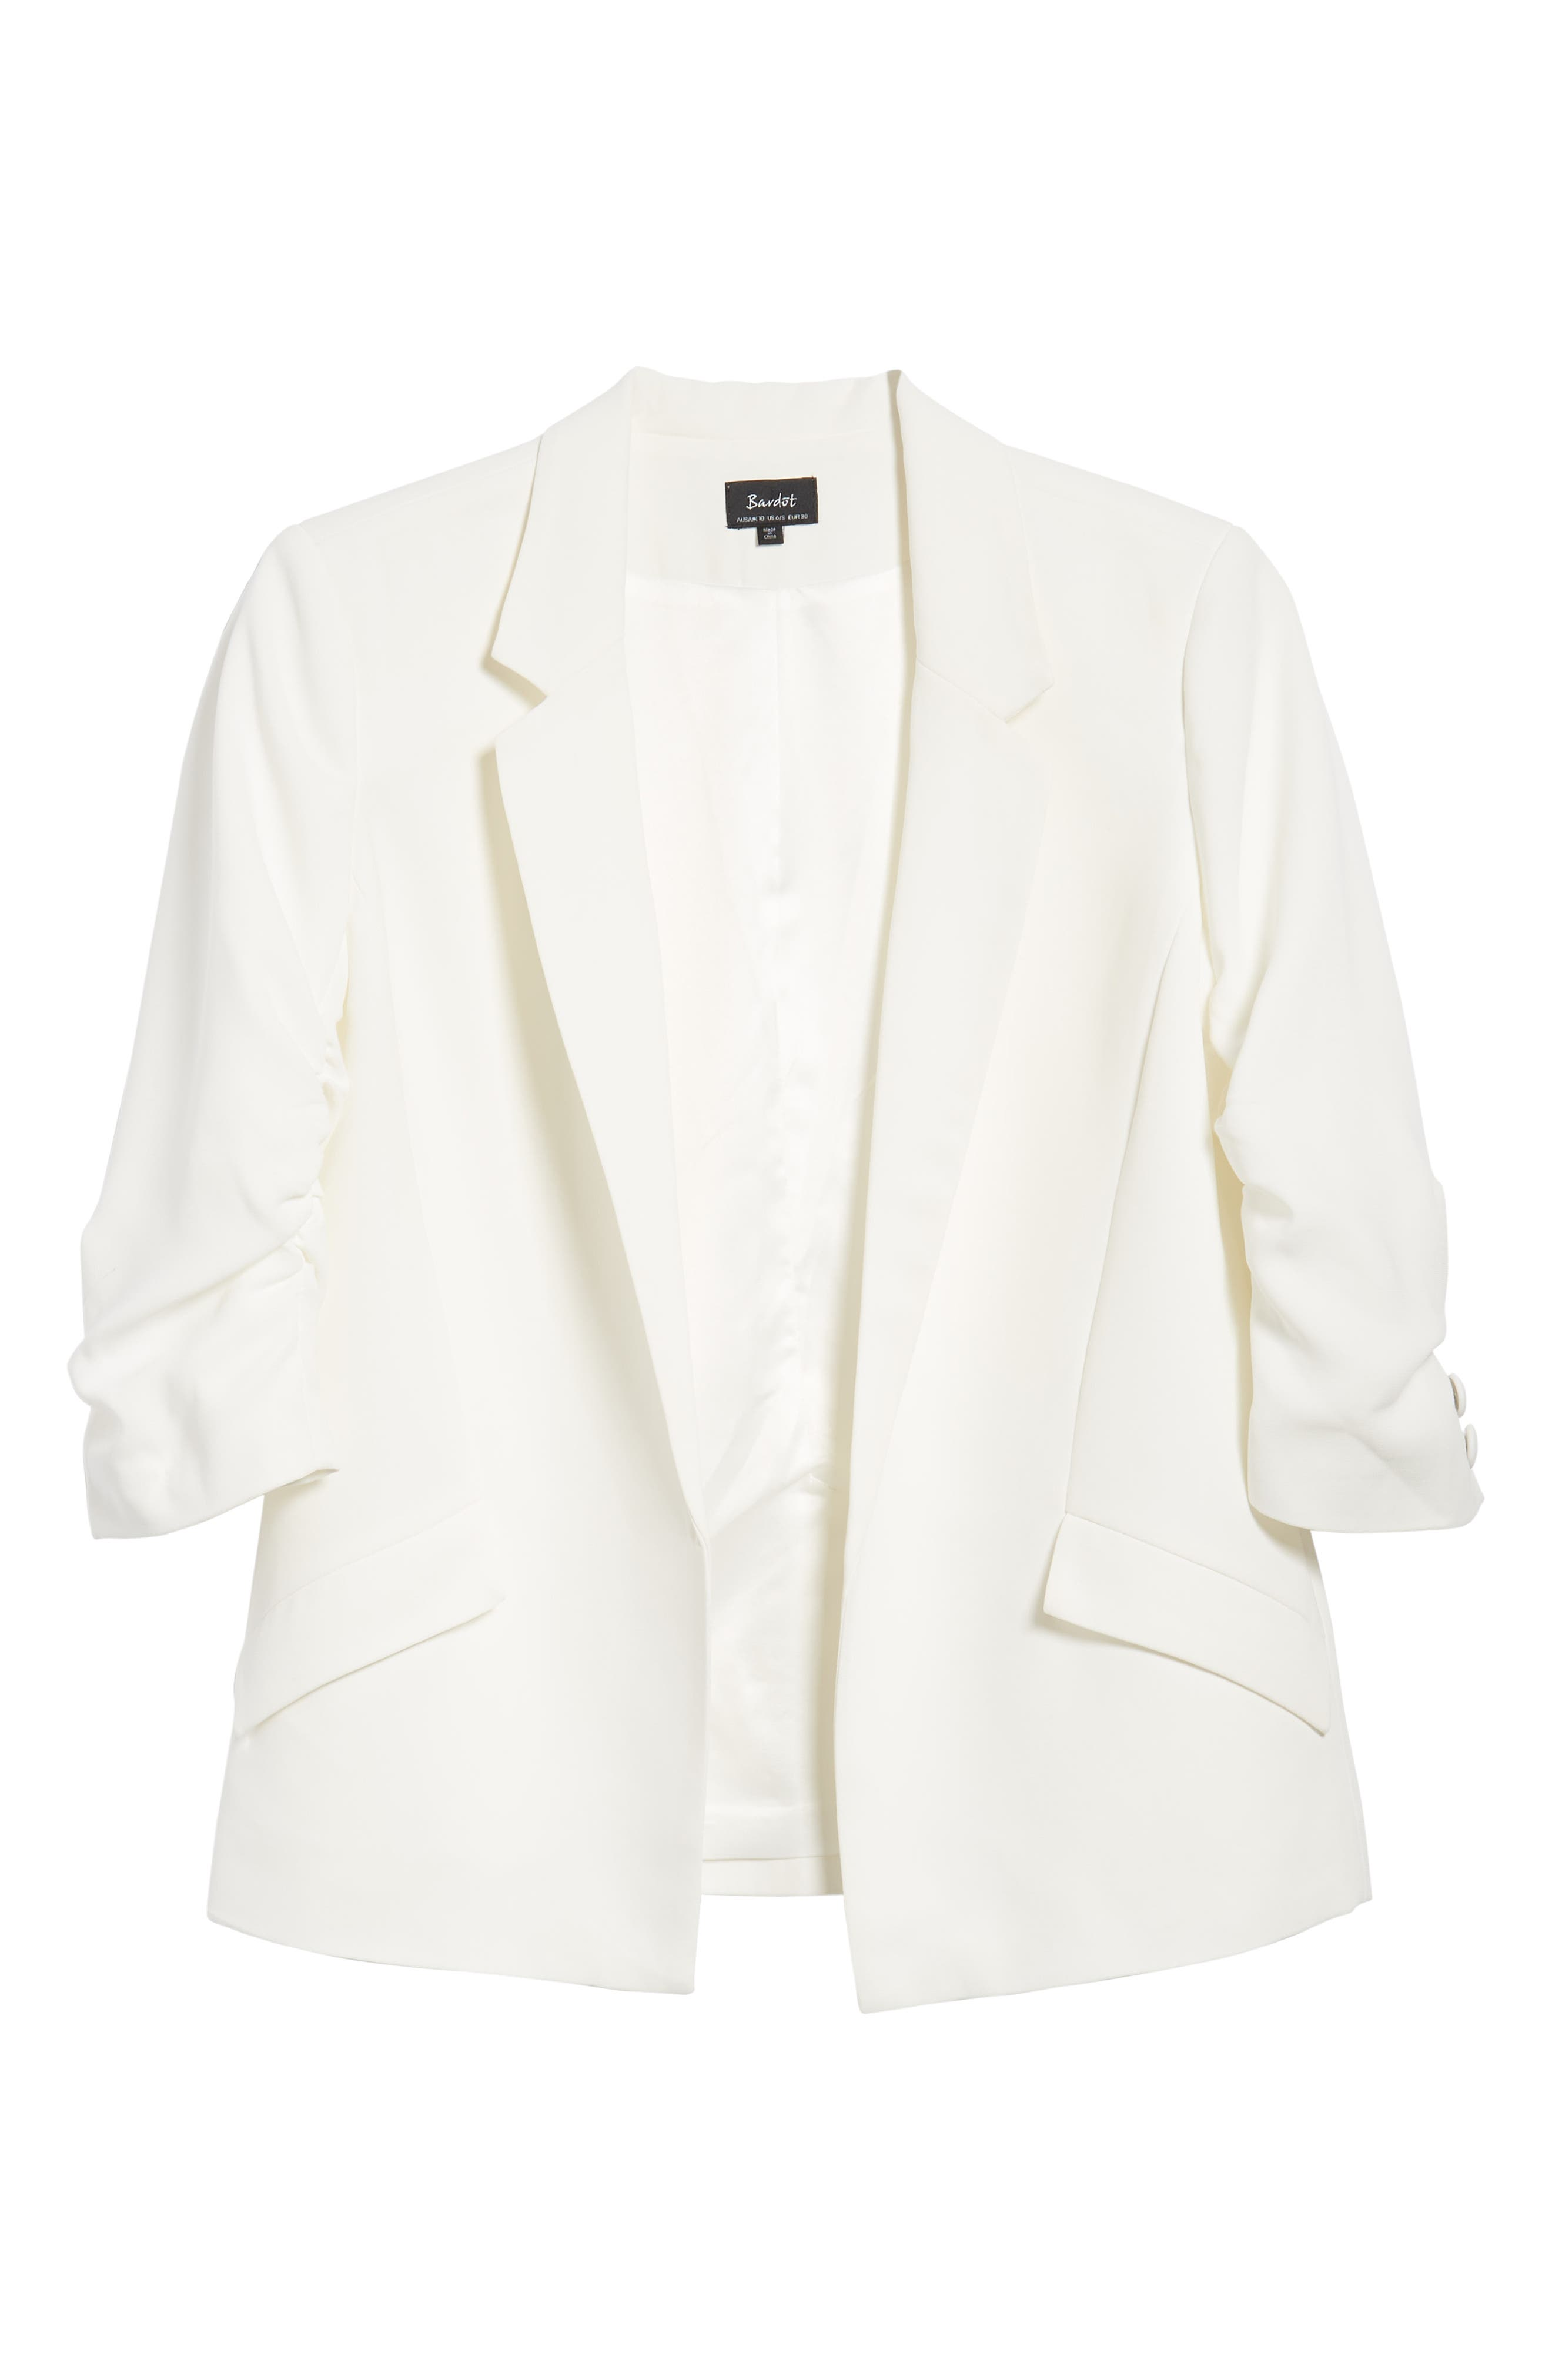 Ruched Sleeve Blazer,                             Alternate thumbnail 6, color,                             White